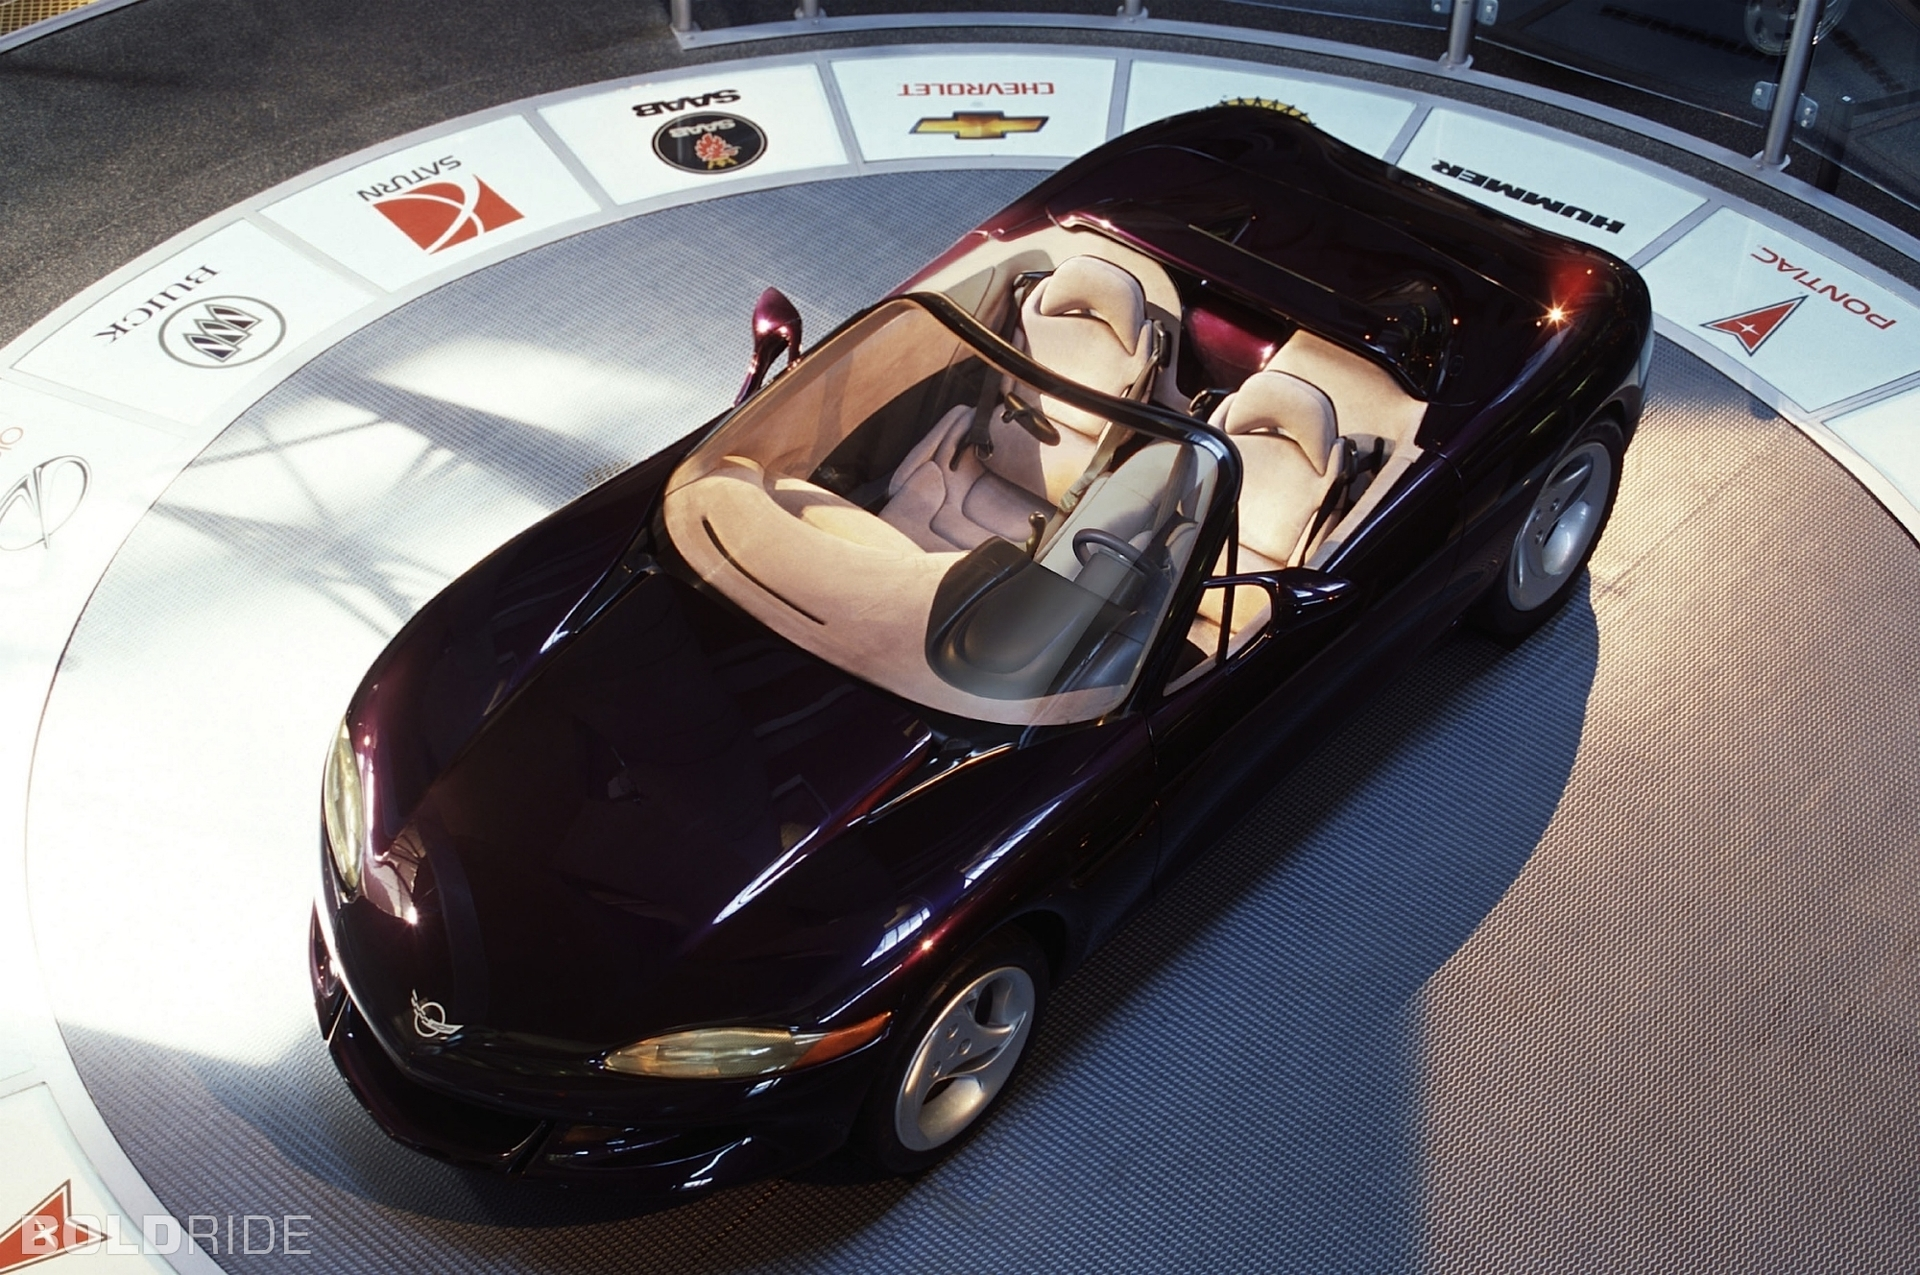 Chevrolet Corvette Sting Ray III Concept